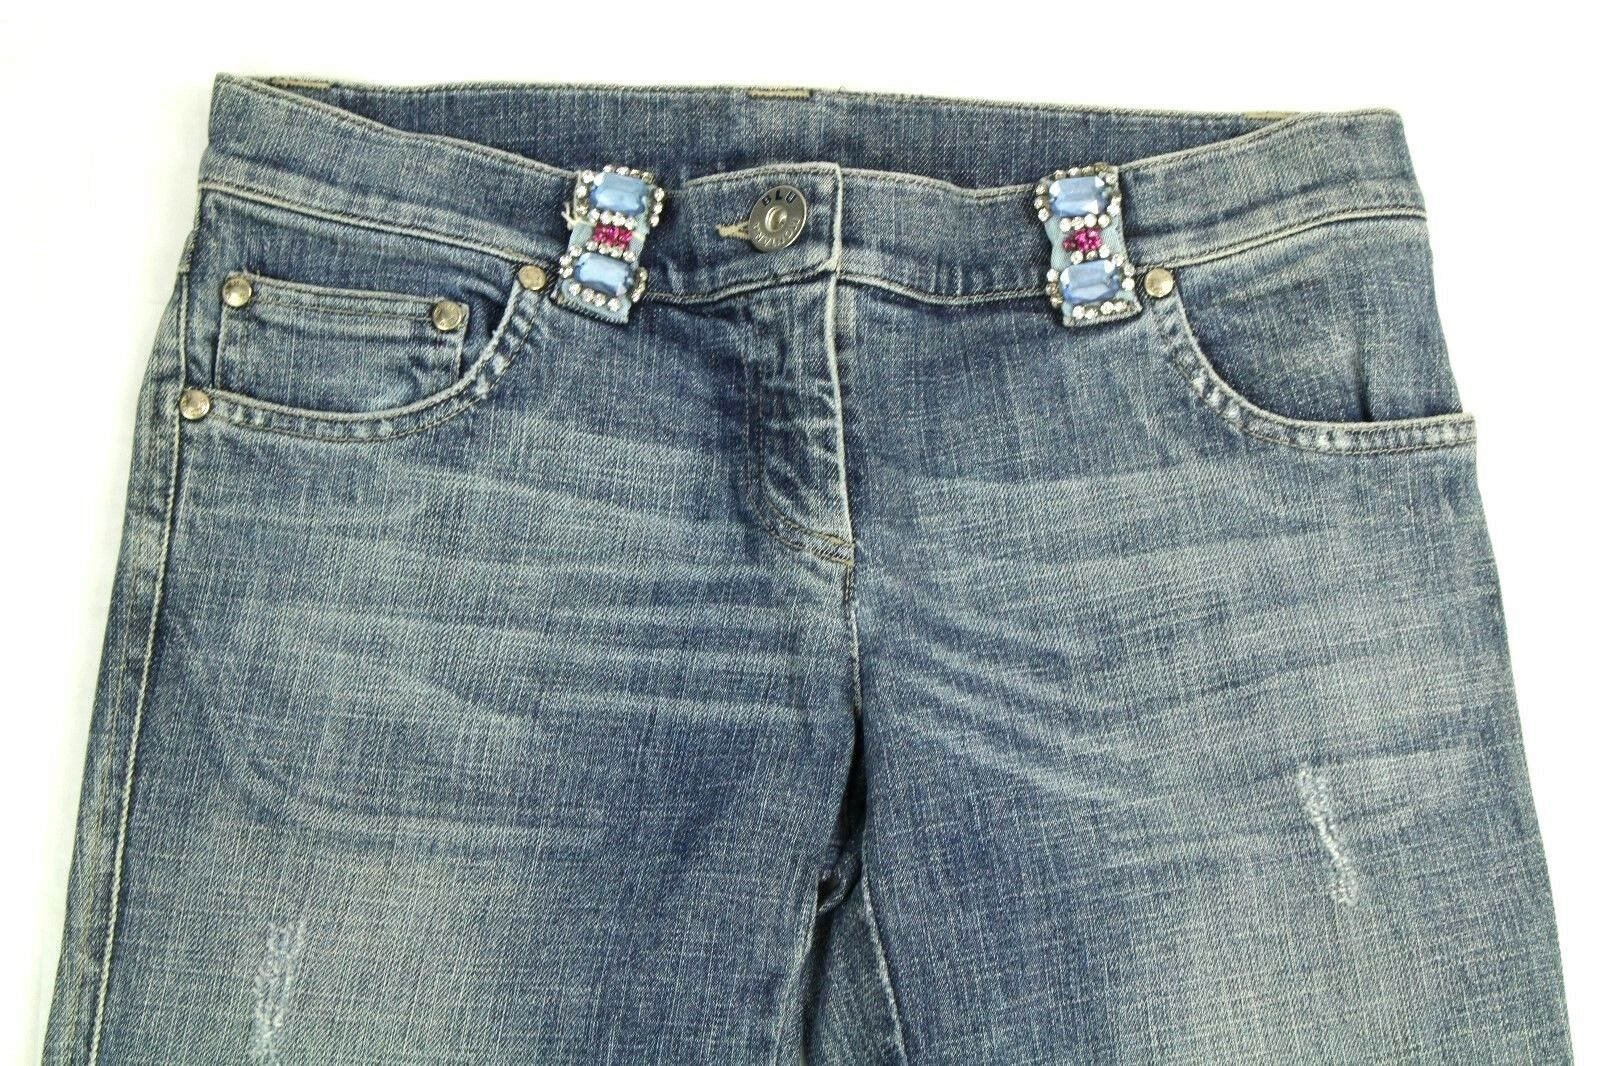 Montana blue Women's Jeans Low Rise Distressed Crystal Embellished  625